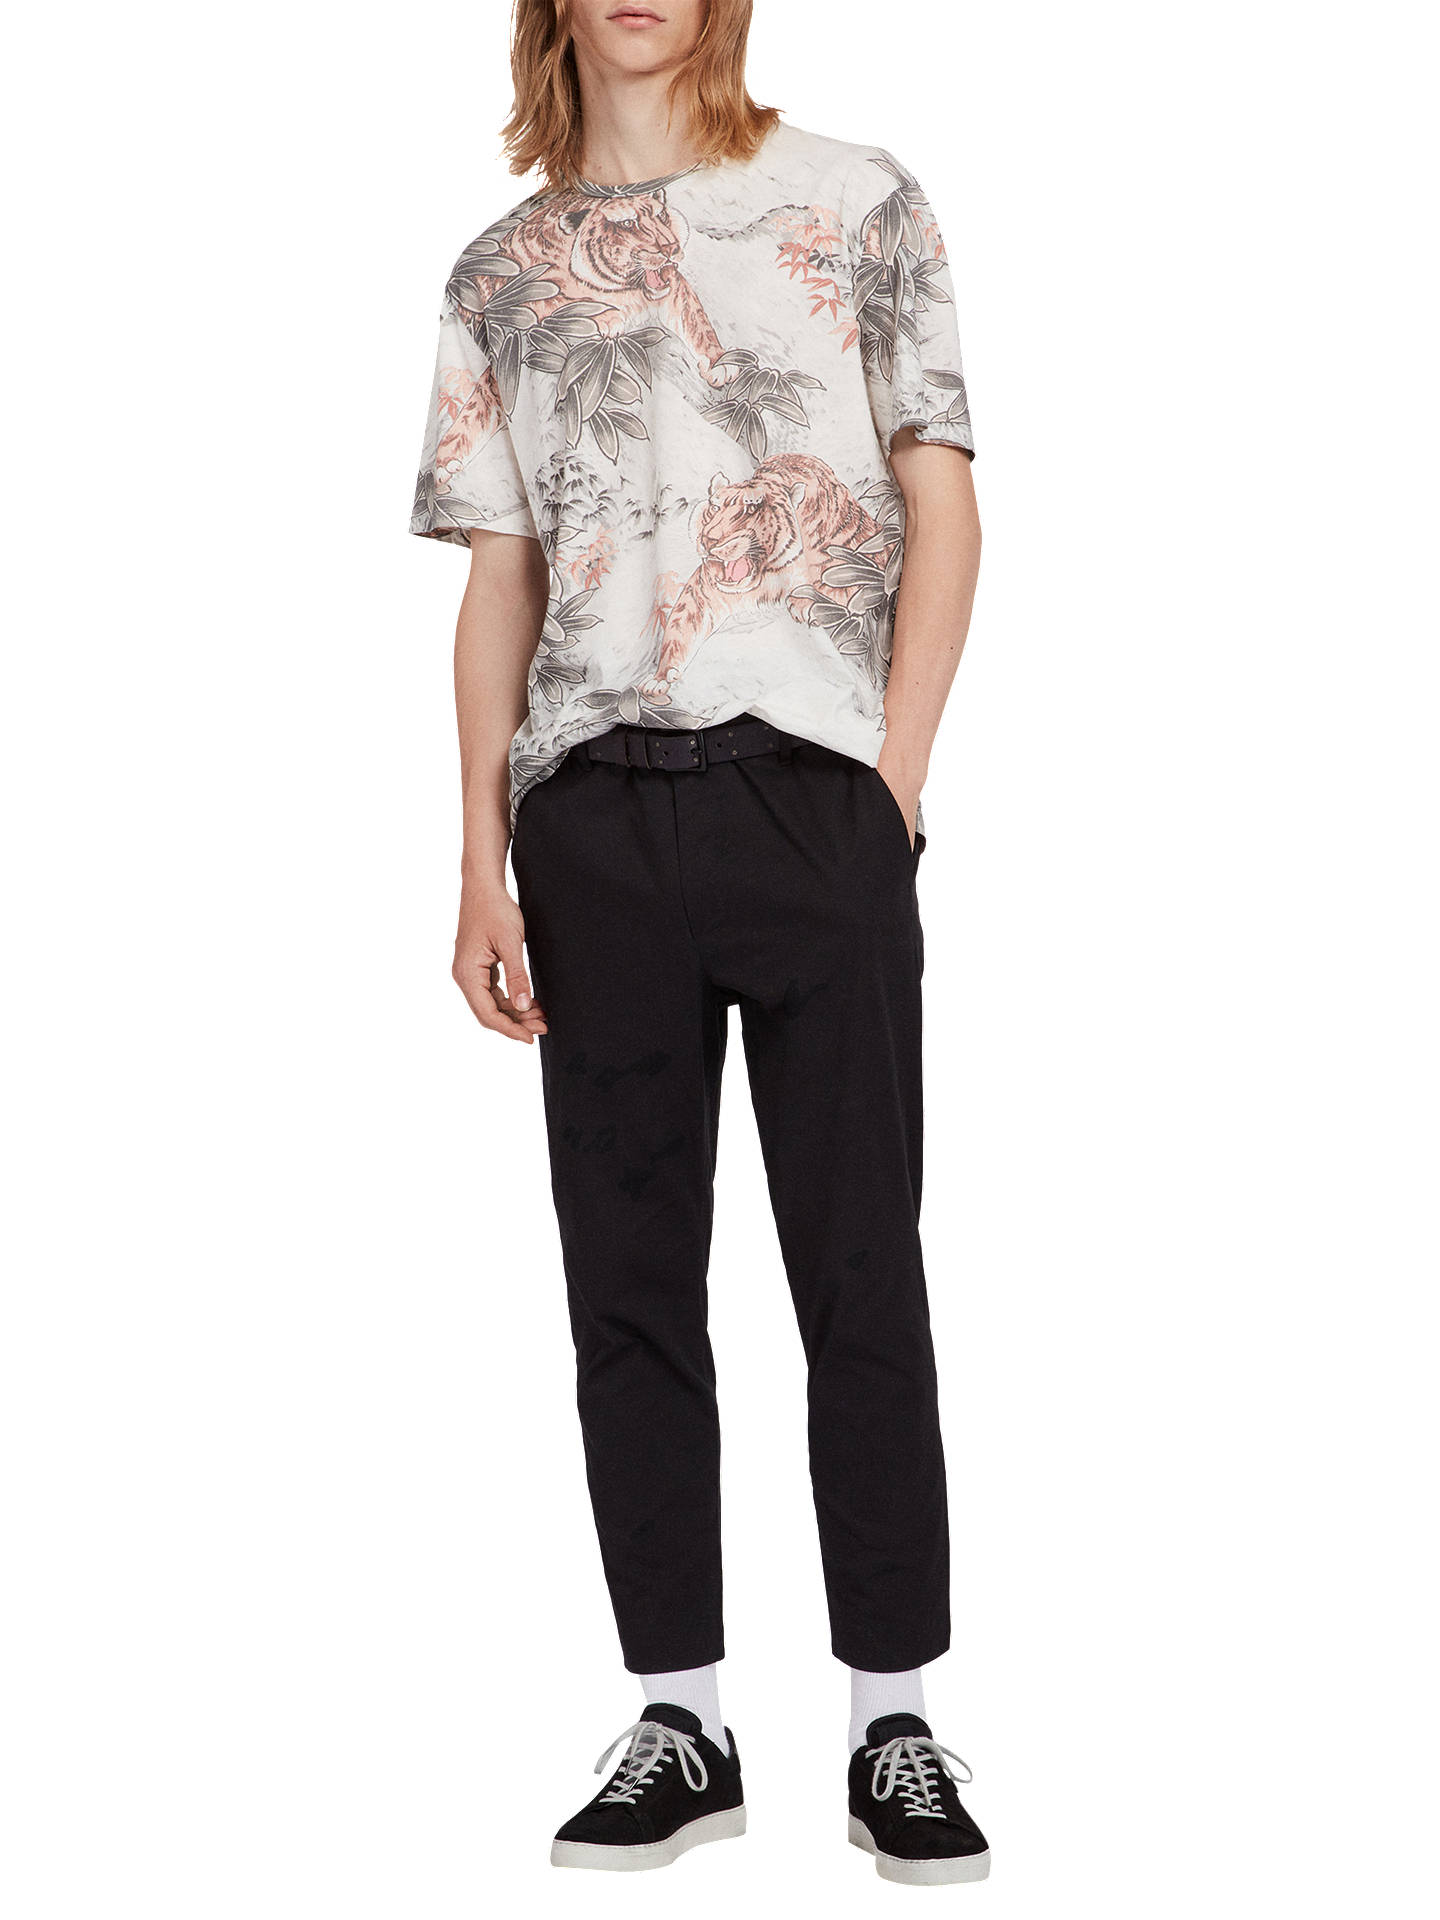 BuyAllSaints Chokai Crew T-Shirt, White, L Online at johnlewis.com